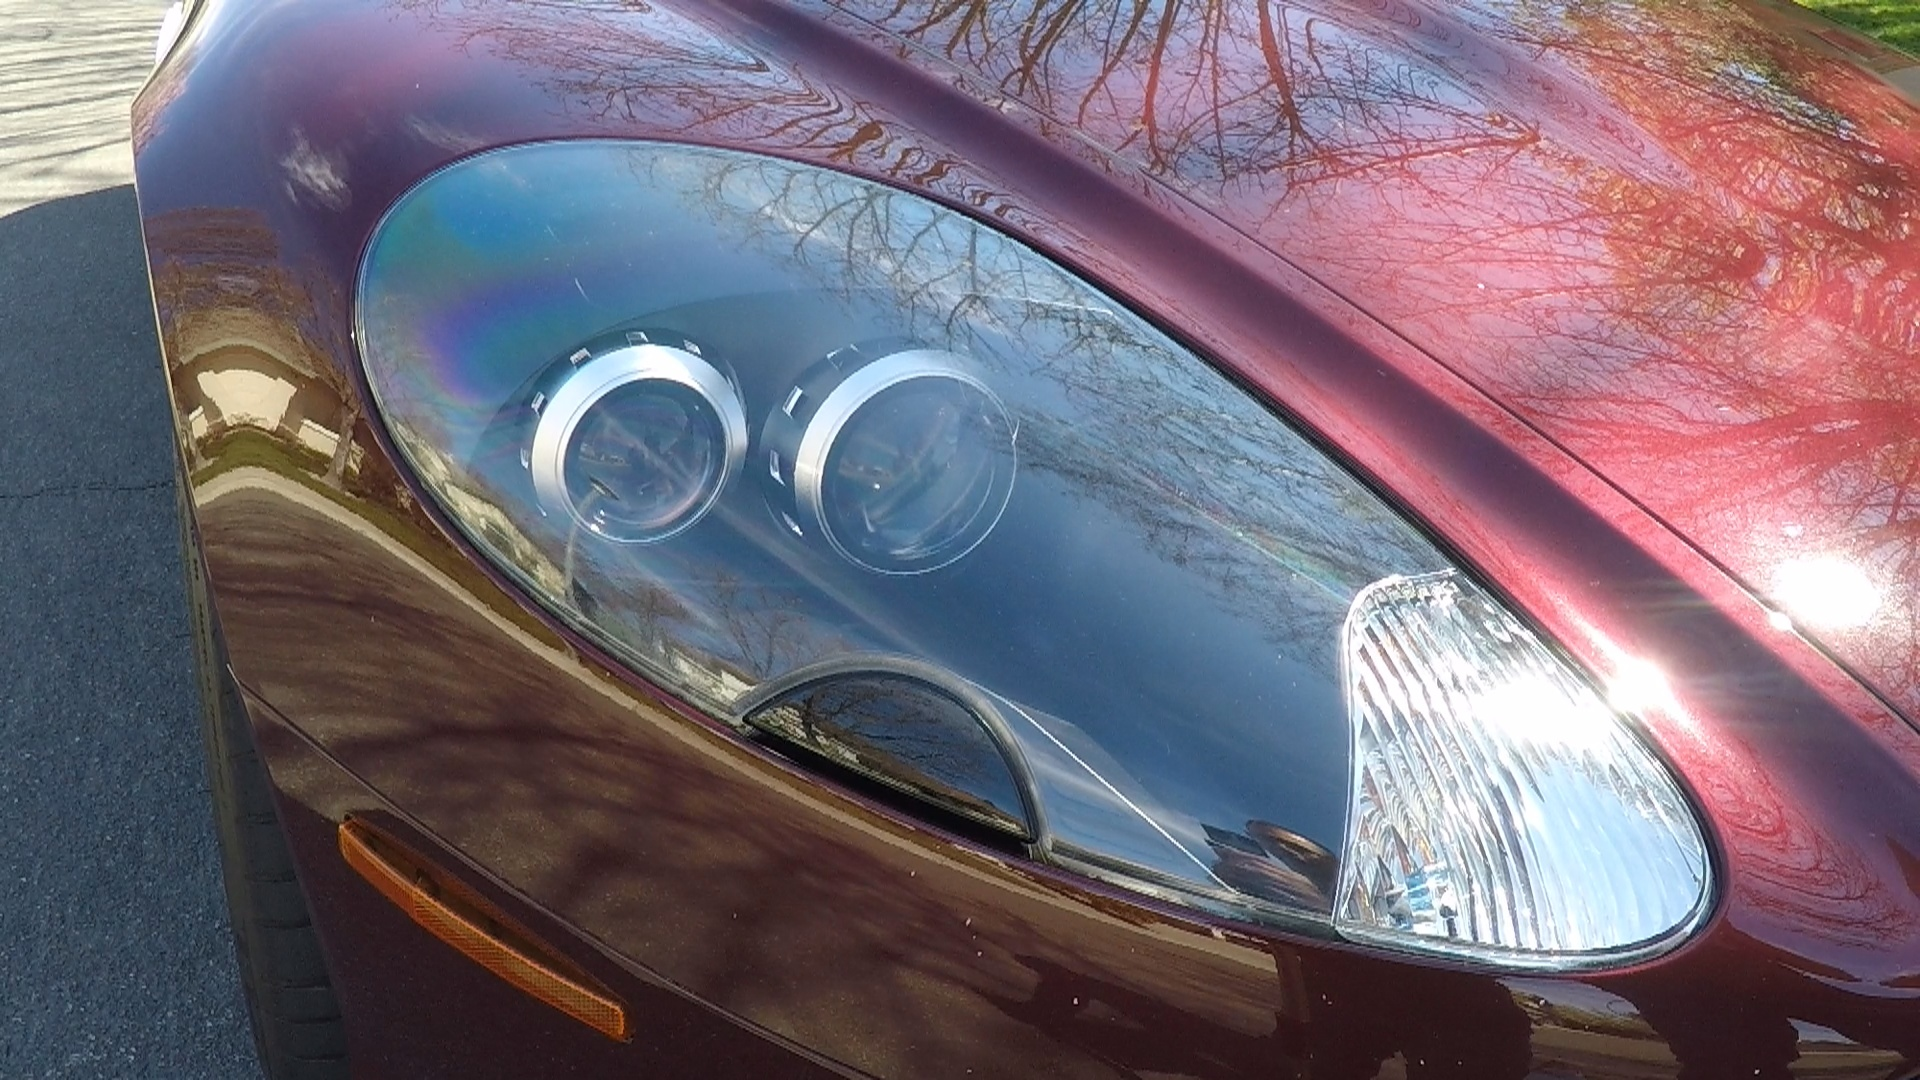 Protecting The Headlights Of An Aston Martin DB9 Using